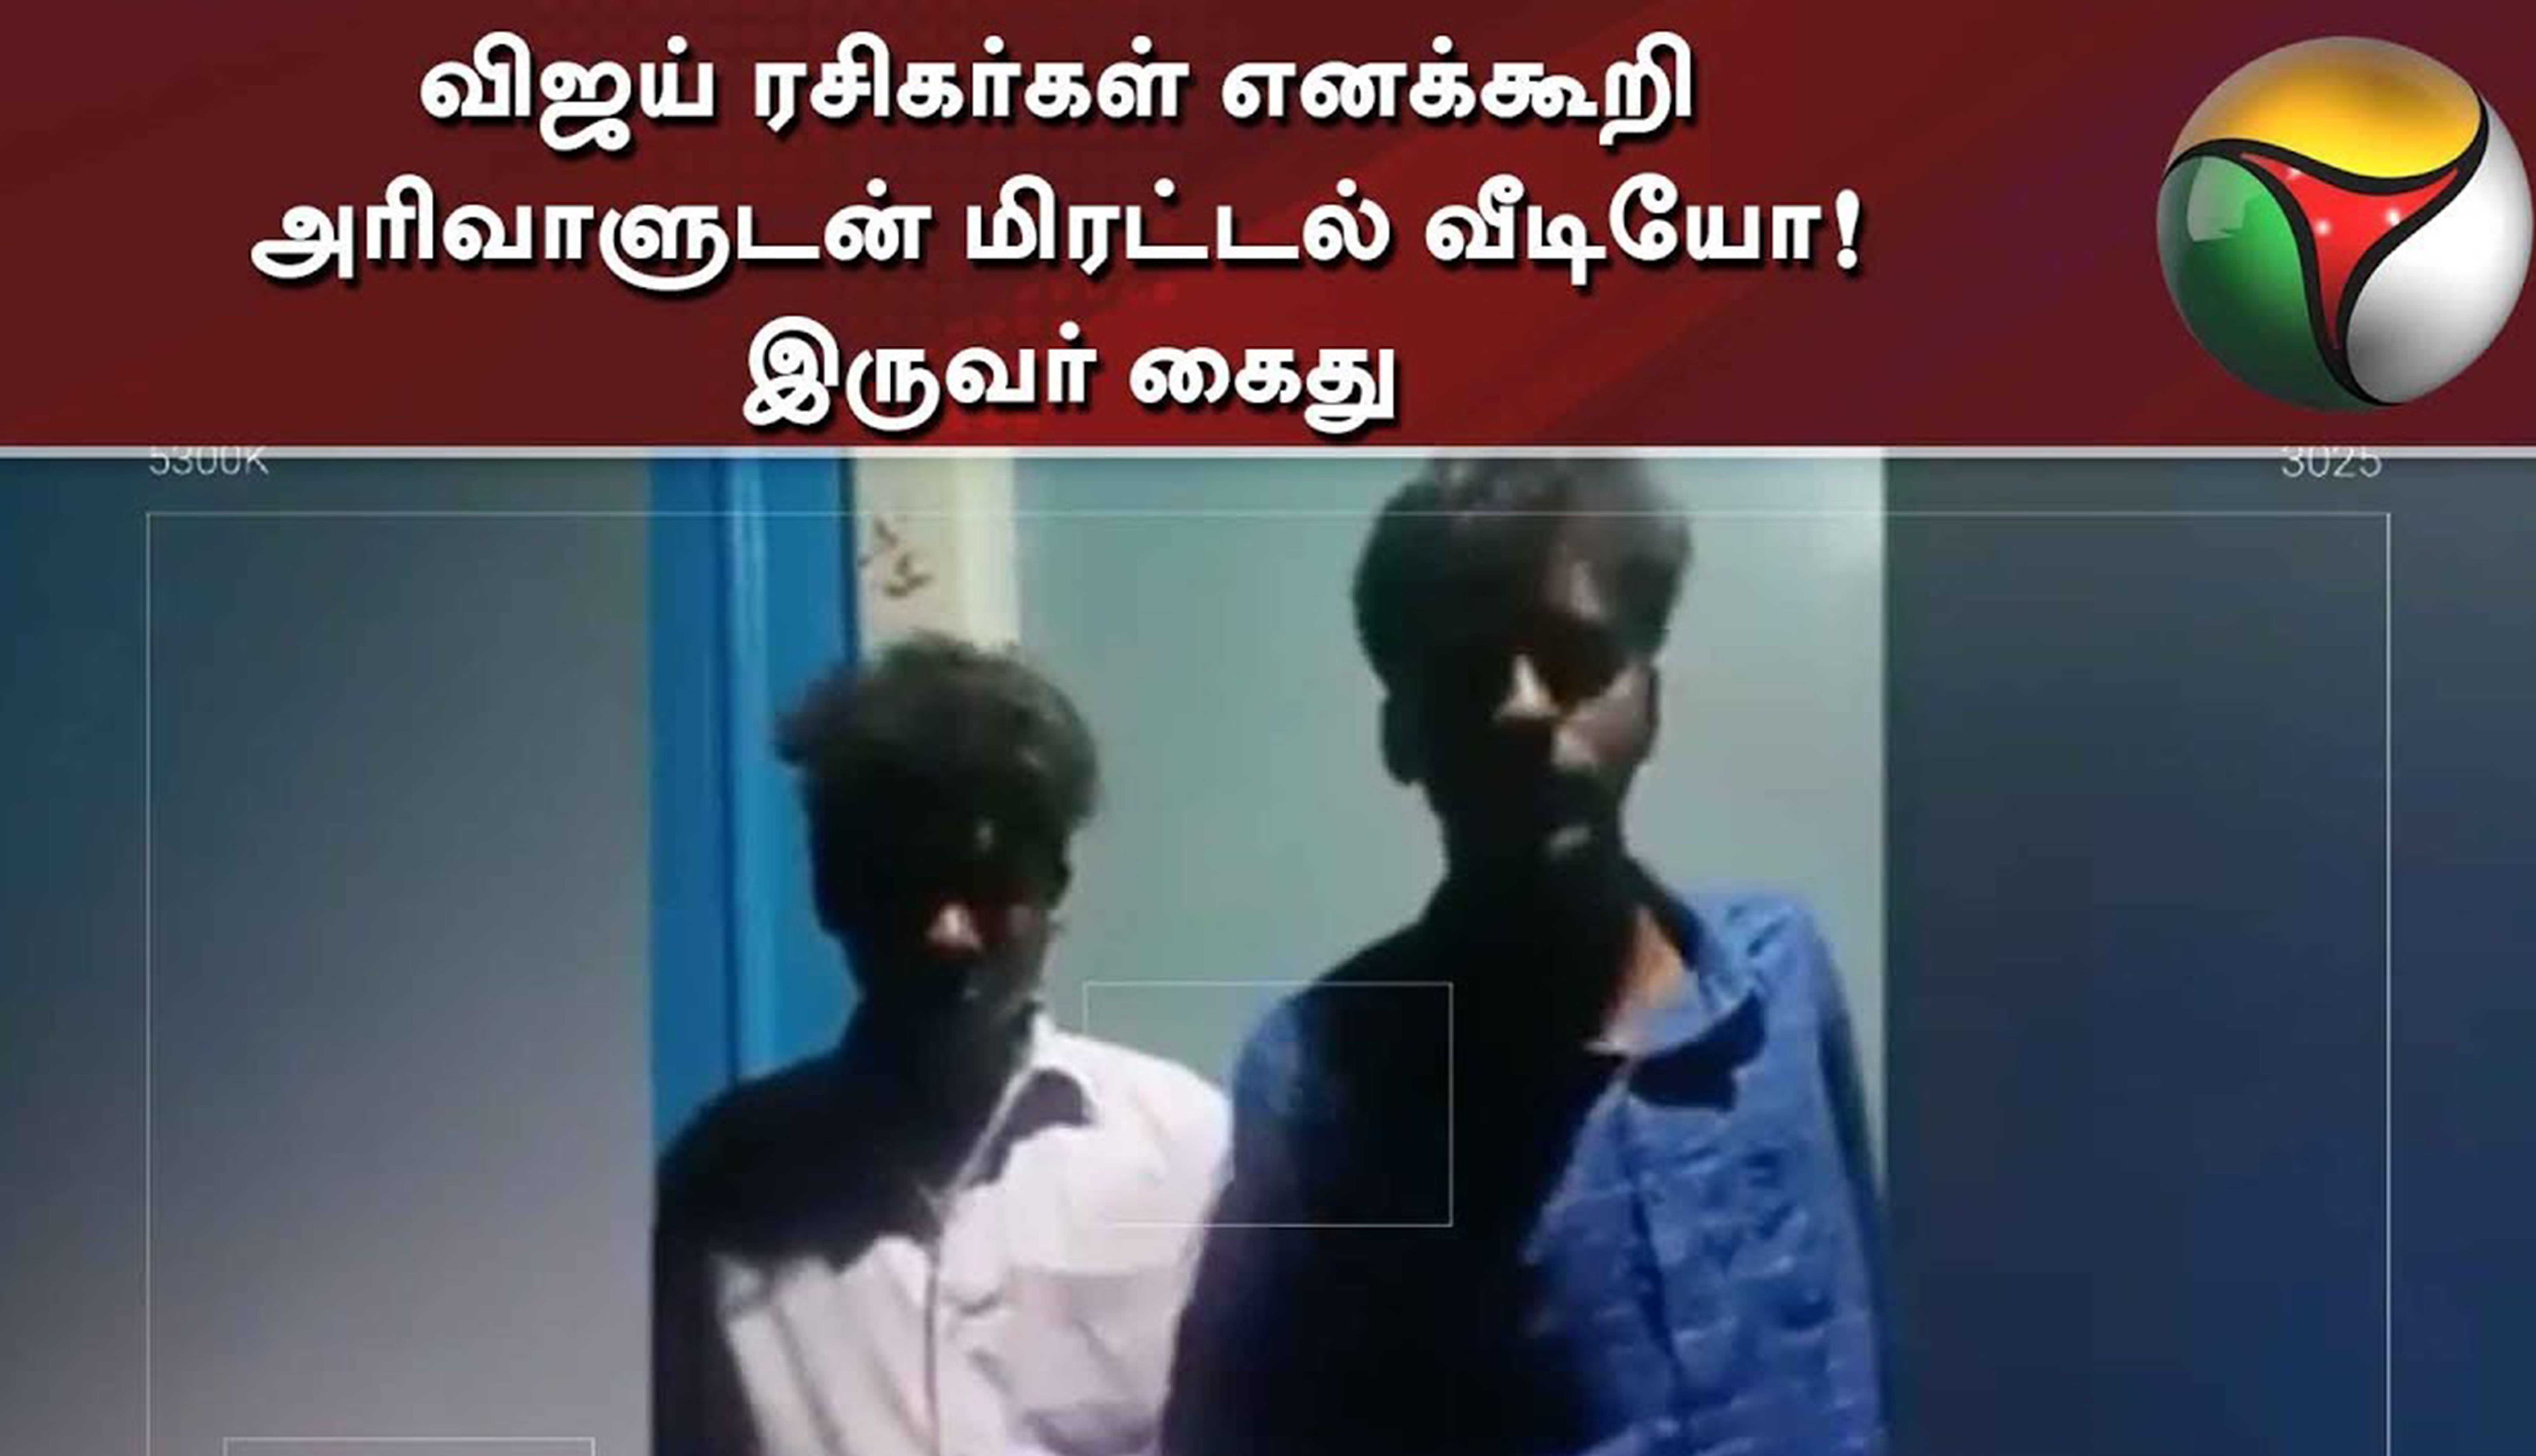 Vijay fans are threatening with Aravas Video! Two arrested